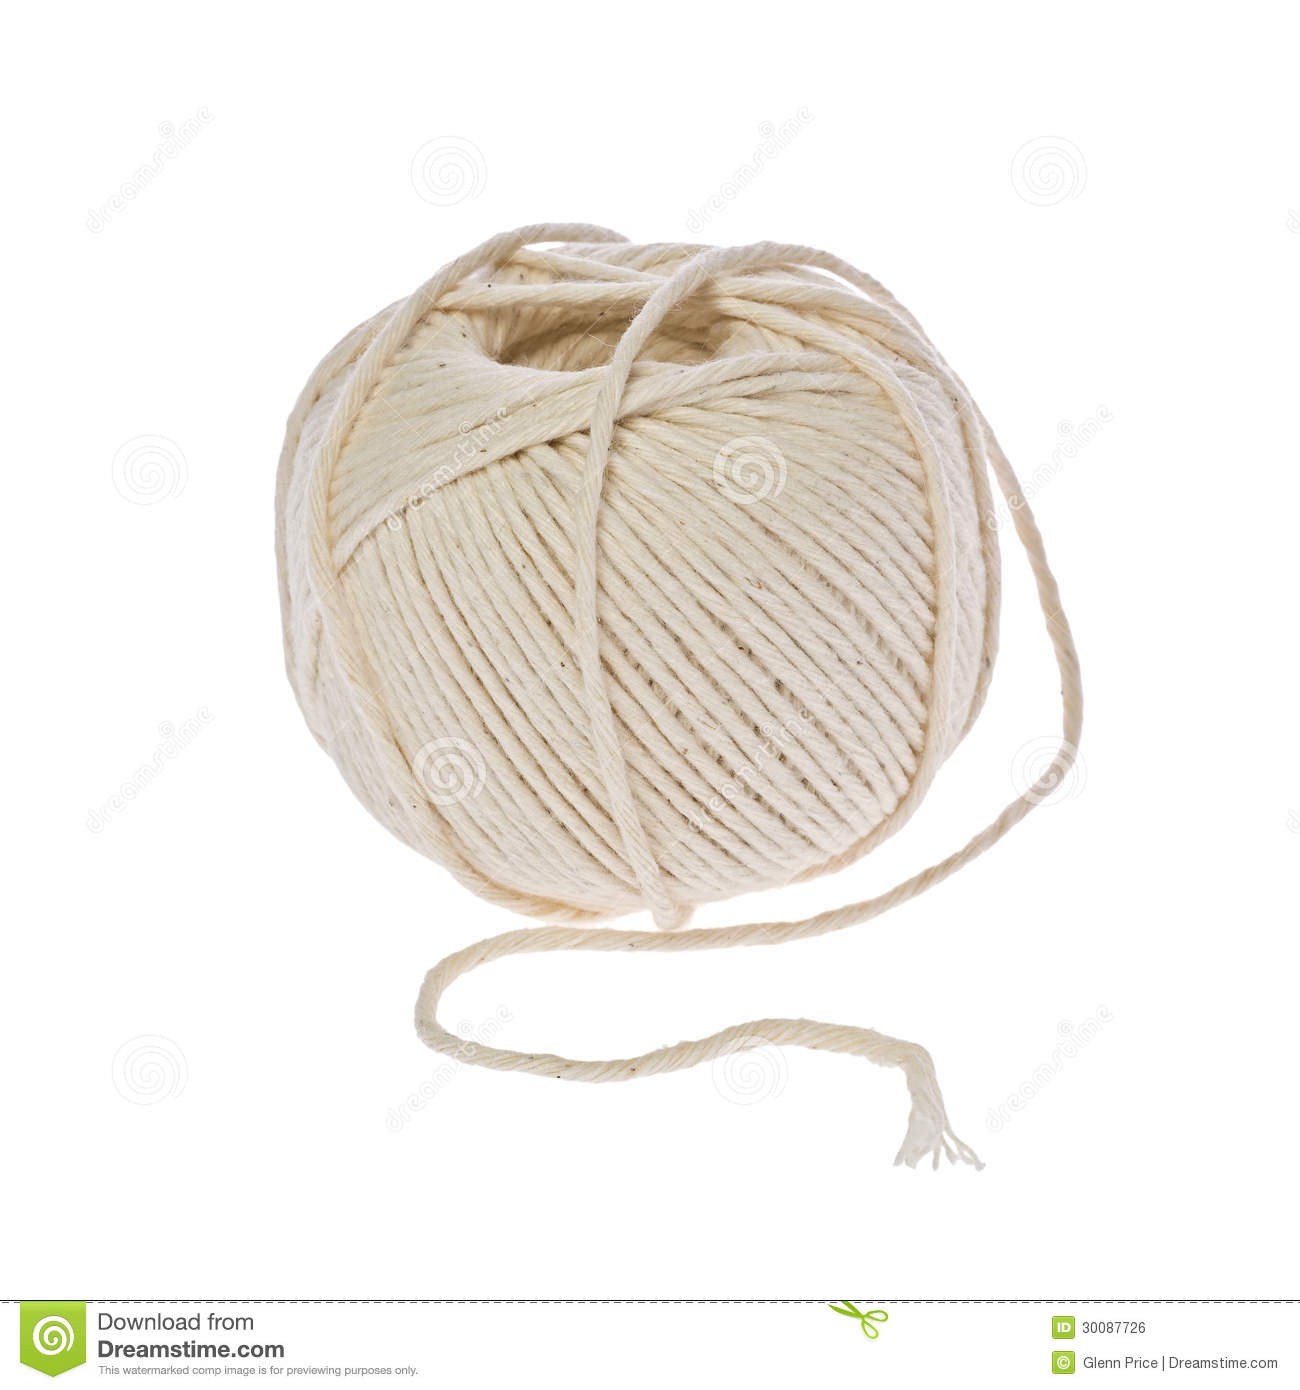 ball of string royalty free stock image image 30087726 tropical flowers clipart free tropical clipart free